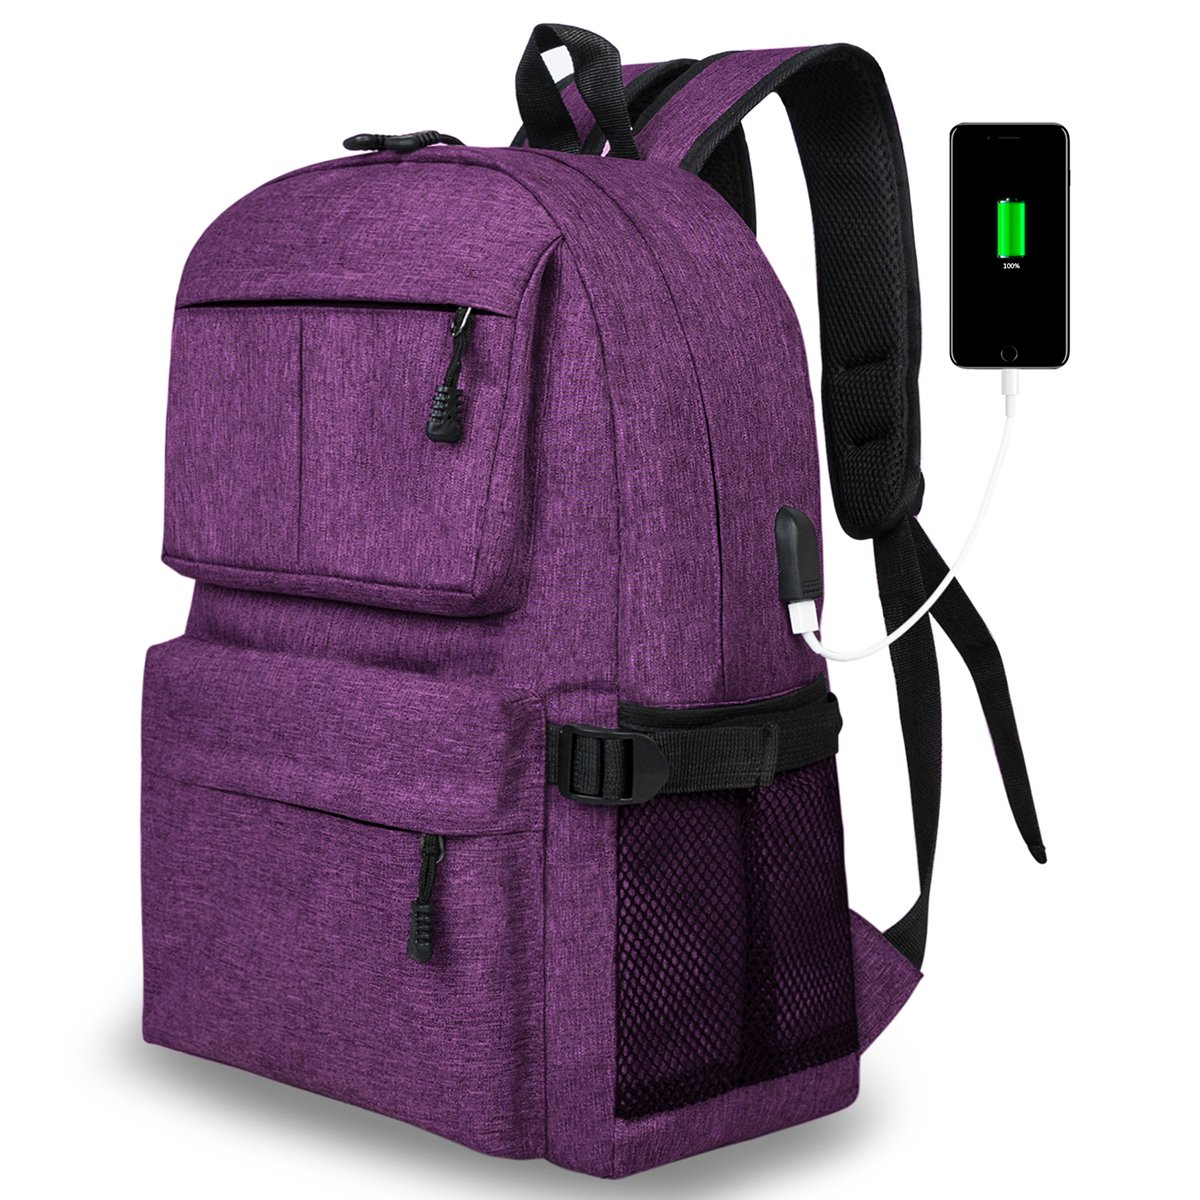 Casual Slim Laptop Backpack Lightweight School Bookbag with USB Charging Port Fits 15 Inch Laptop Notebook for College Students Travel backpack Women & Men (Purple)